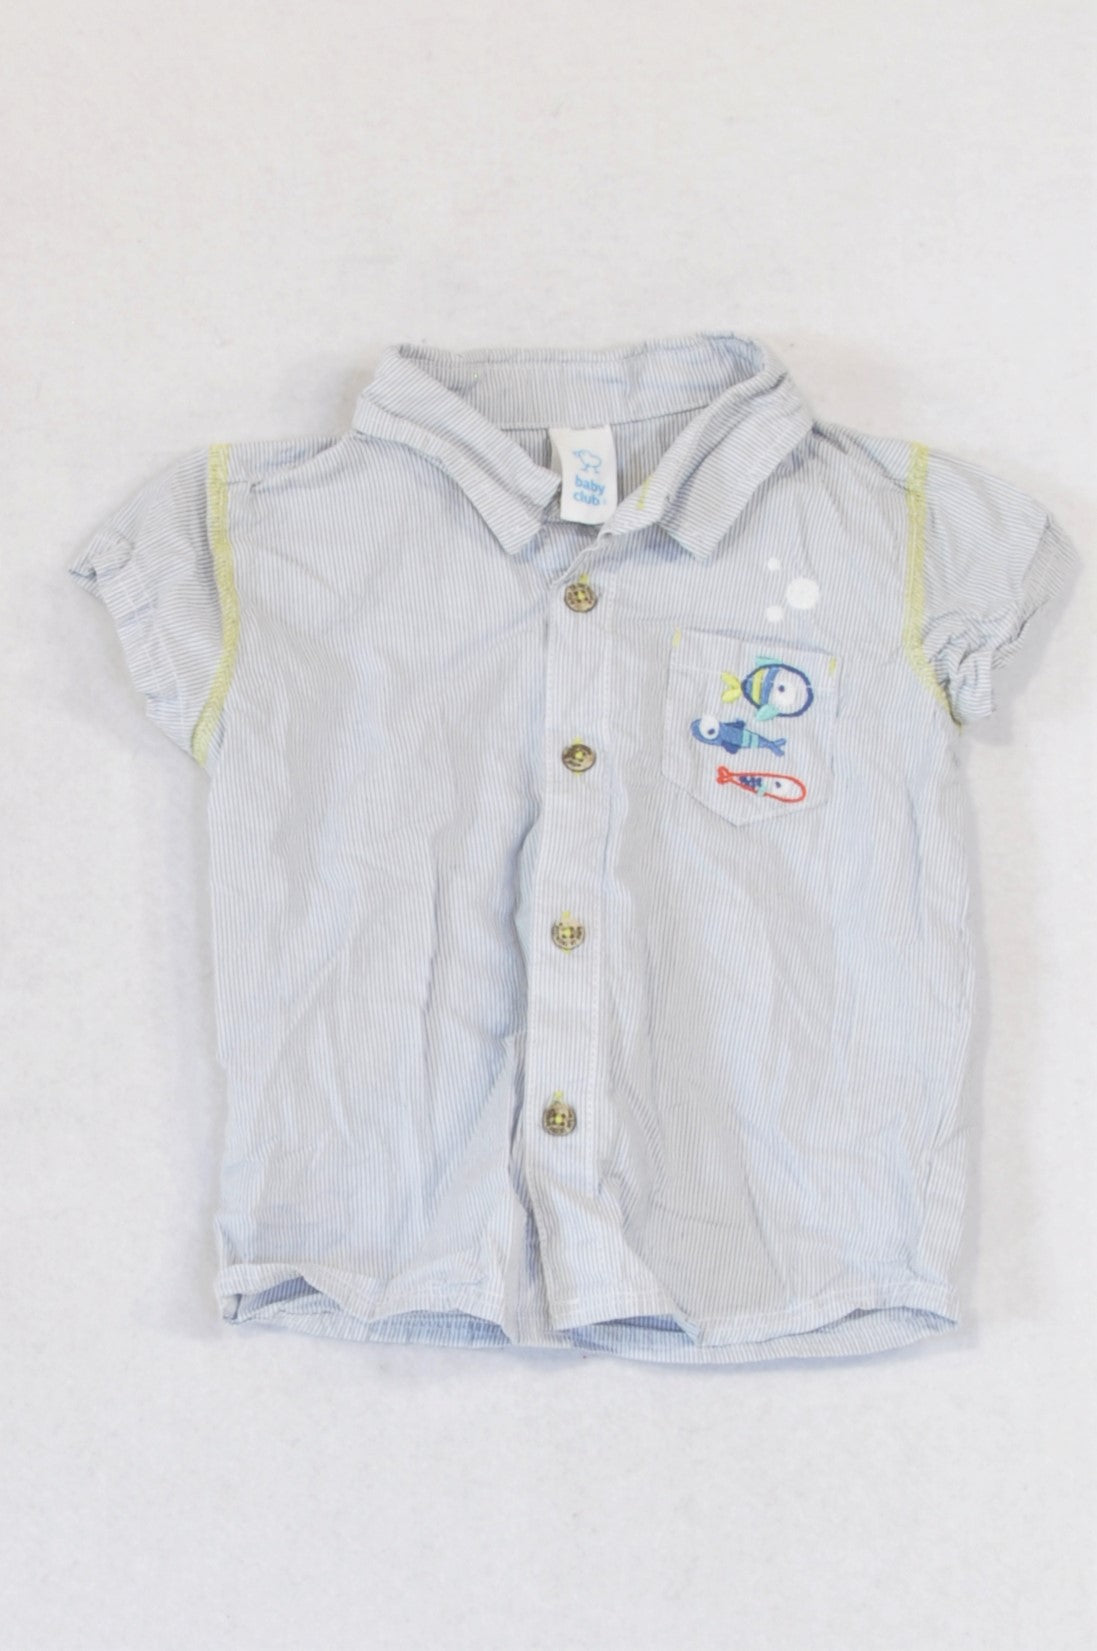 Baby Club Navy Pinstripe Embroidered Fishee Pocket Shirt Boys 3-6 months